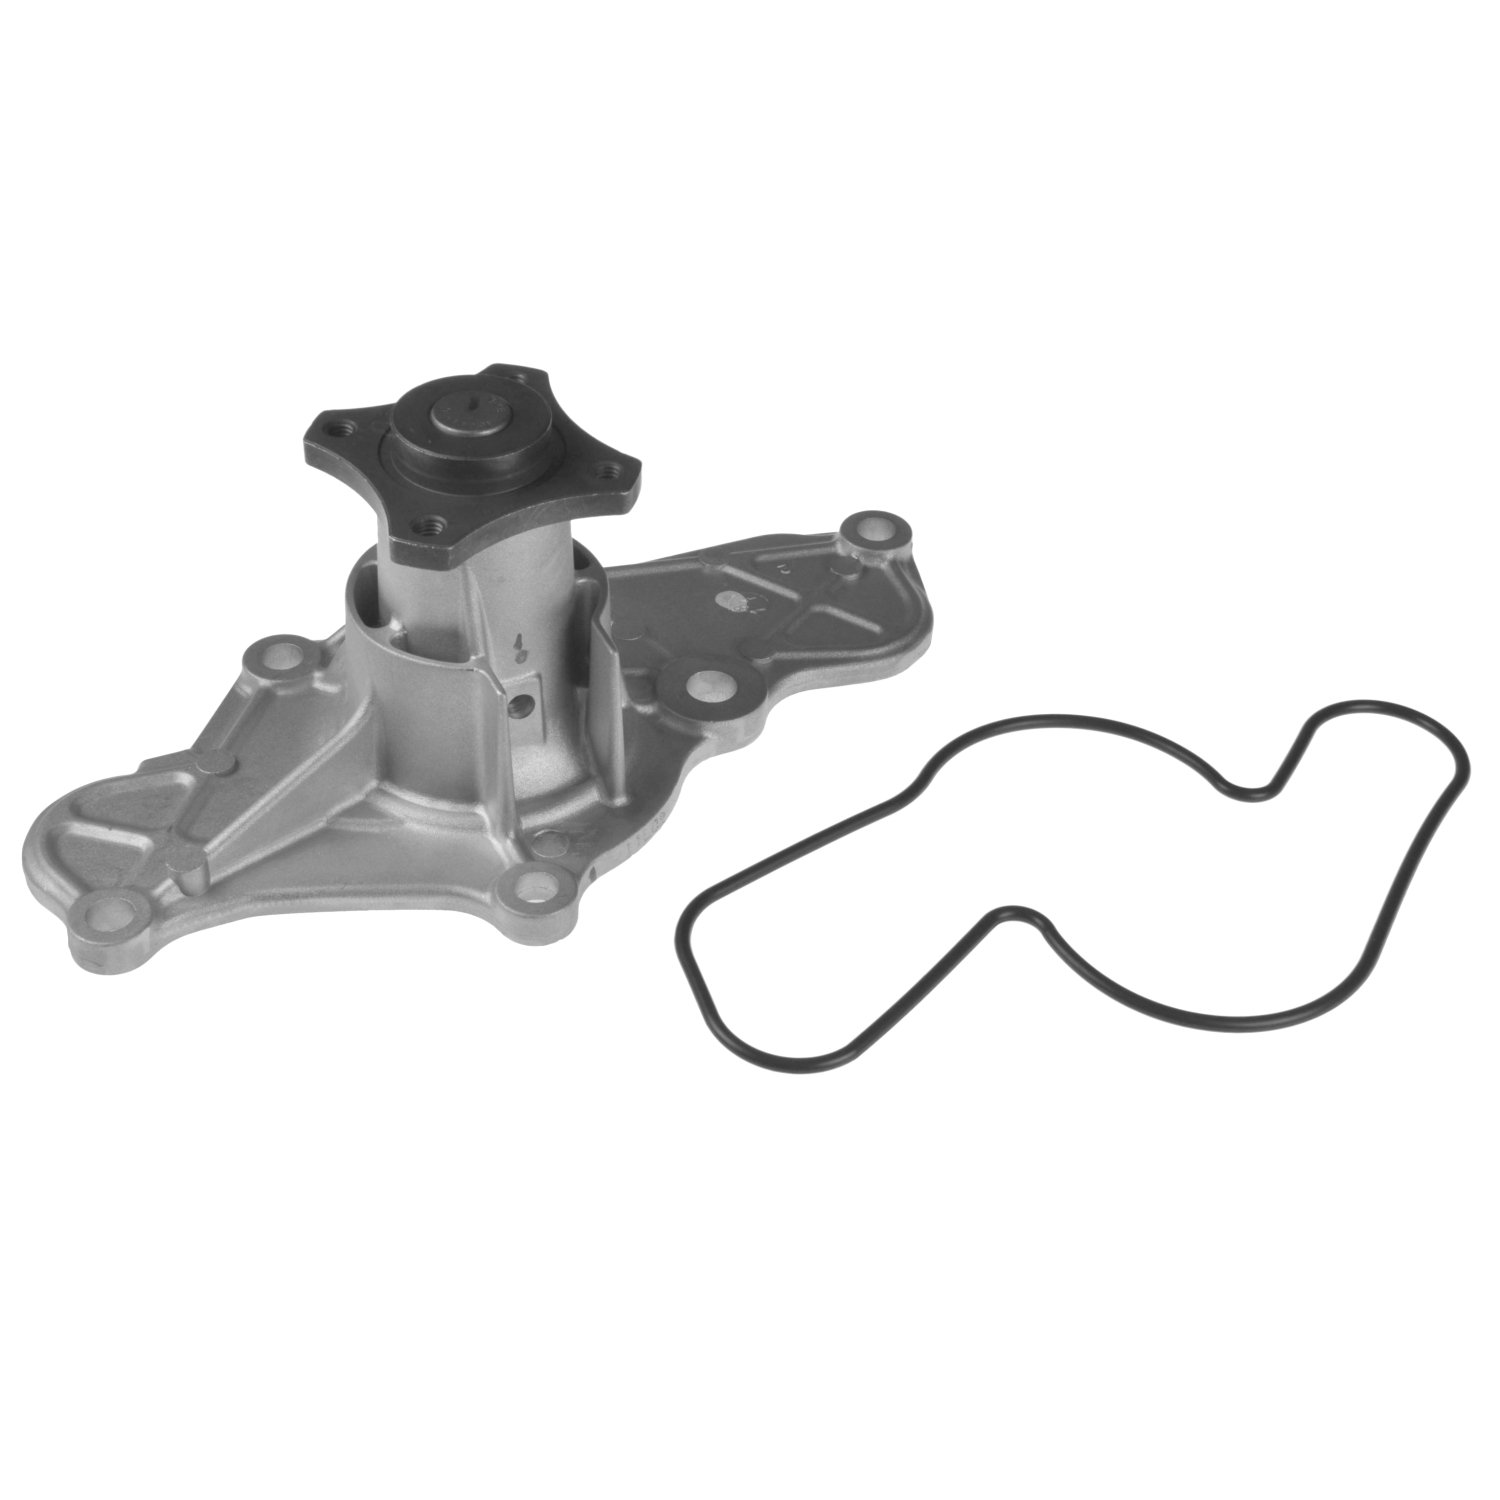 pack of one Blue Print ADM59118 Water Pump with seal ring